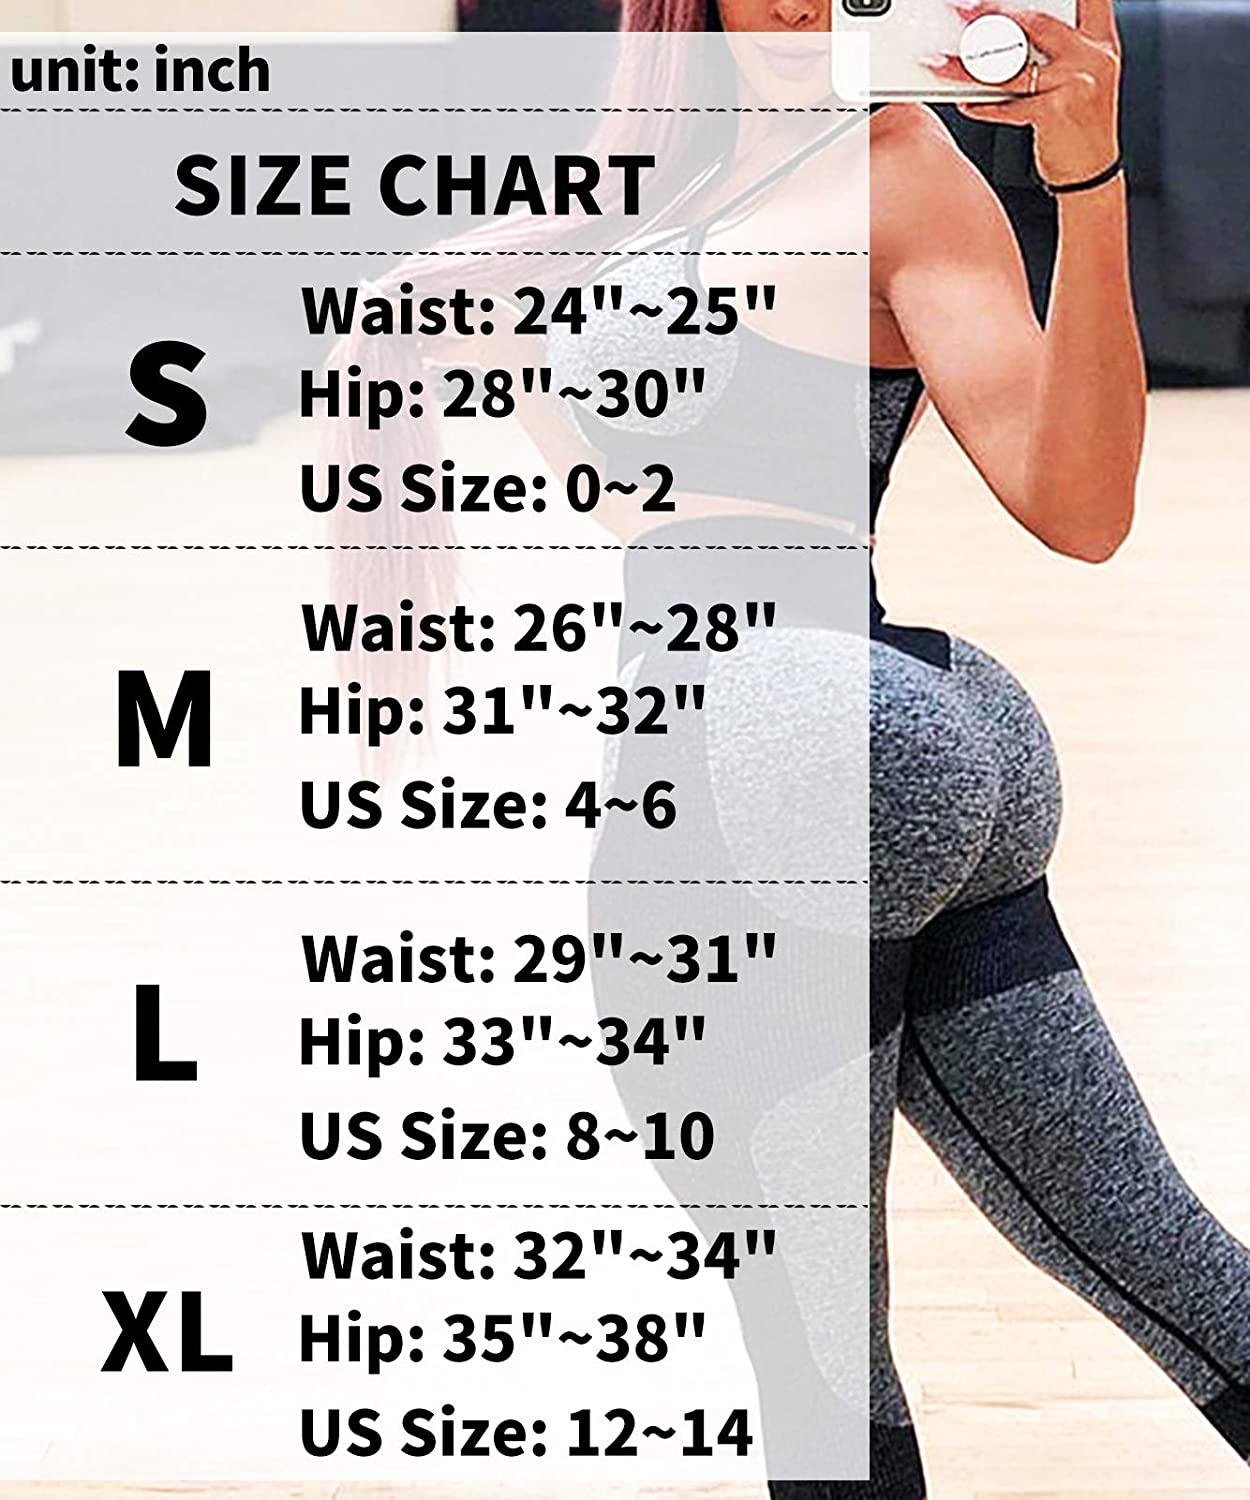 Murandick Seamless Workout Leggings for Women High Waisted Yoga Pants Butt Lifting Gymshark Tummy Control Commpression Tights